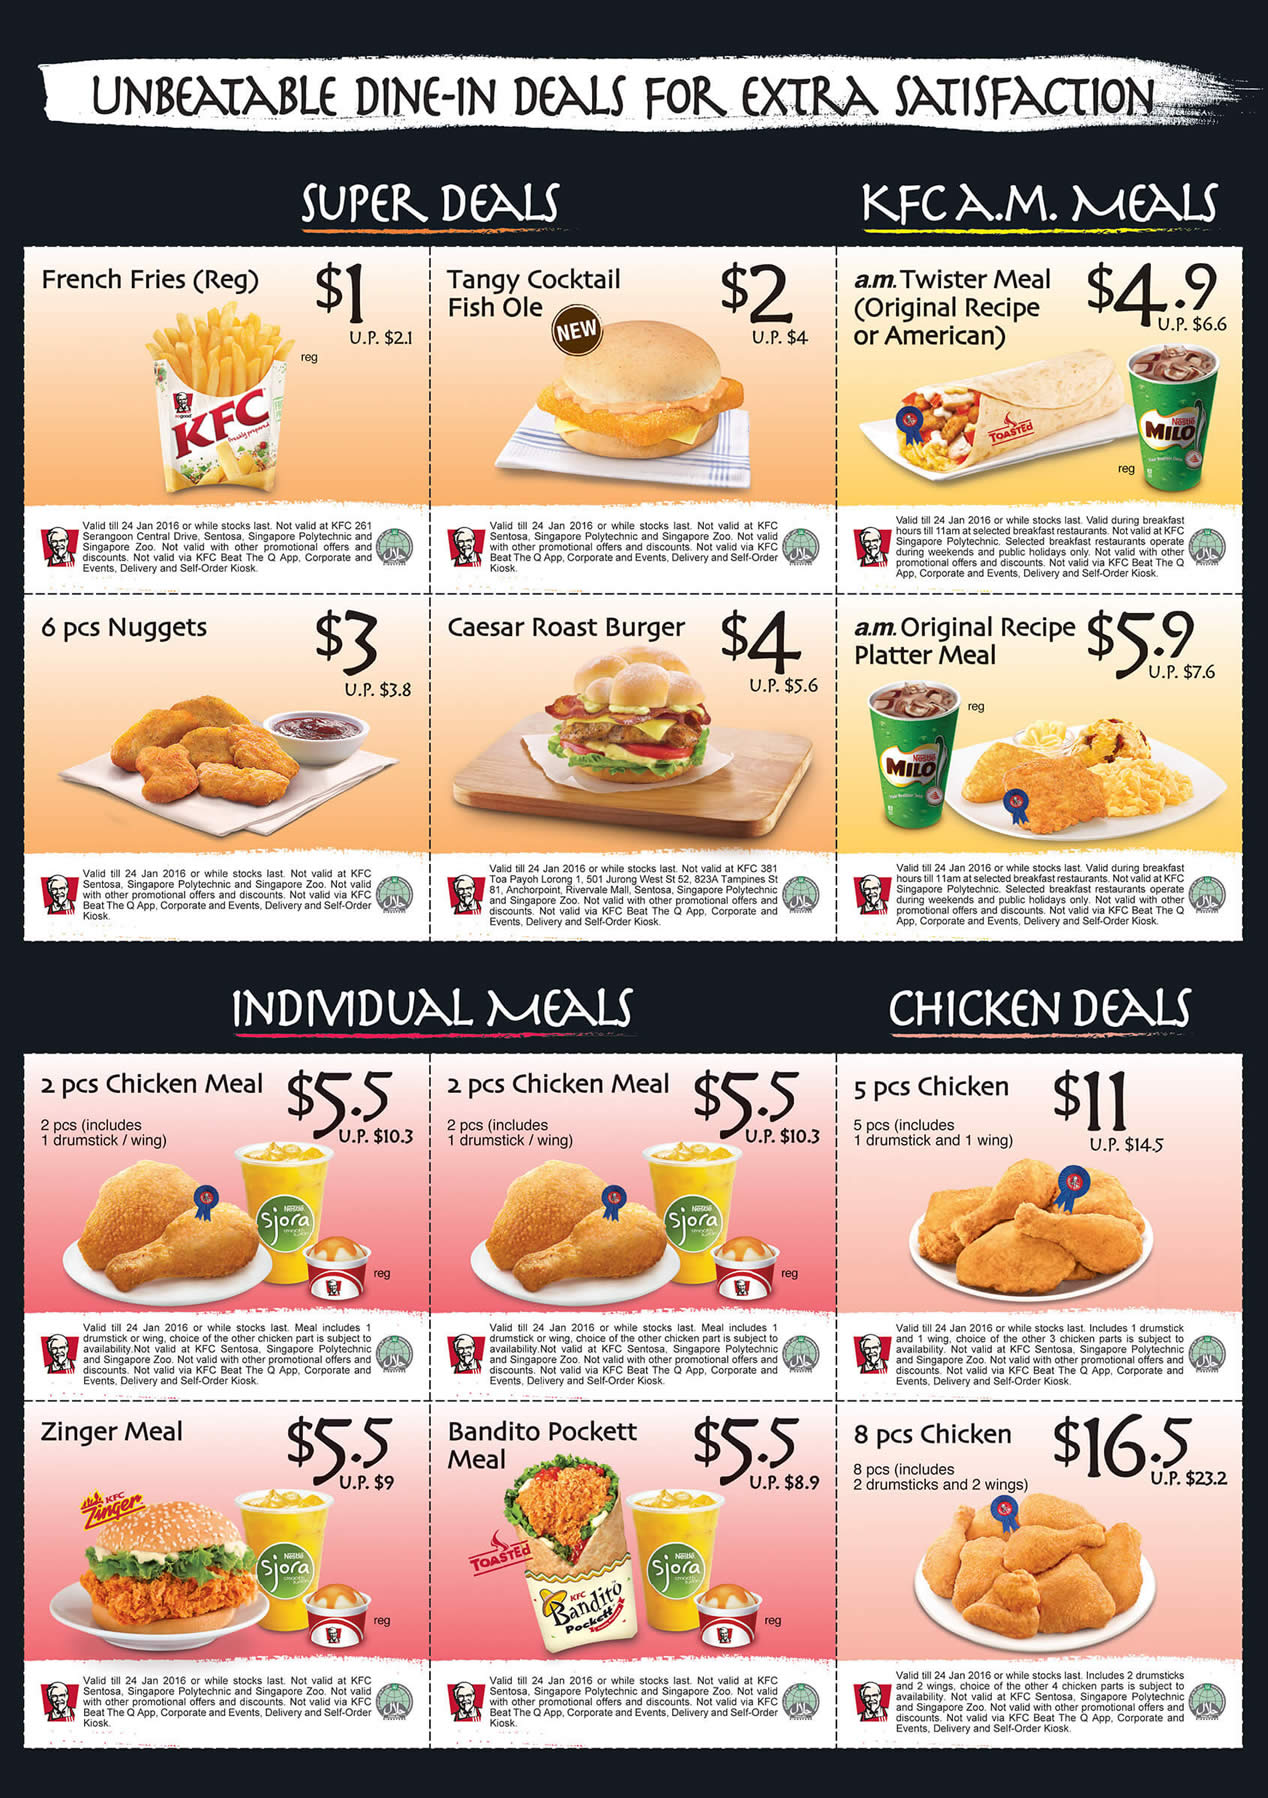 photo about Kfc Coupons Printable named Kfc coupon codes nsw 2018 - Boundary bogs offers